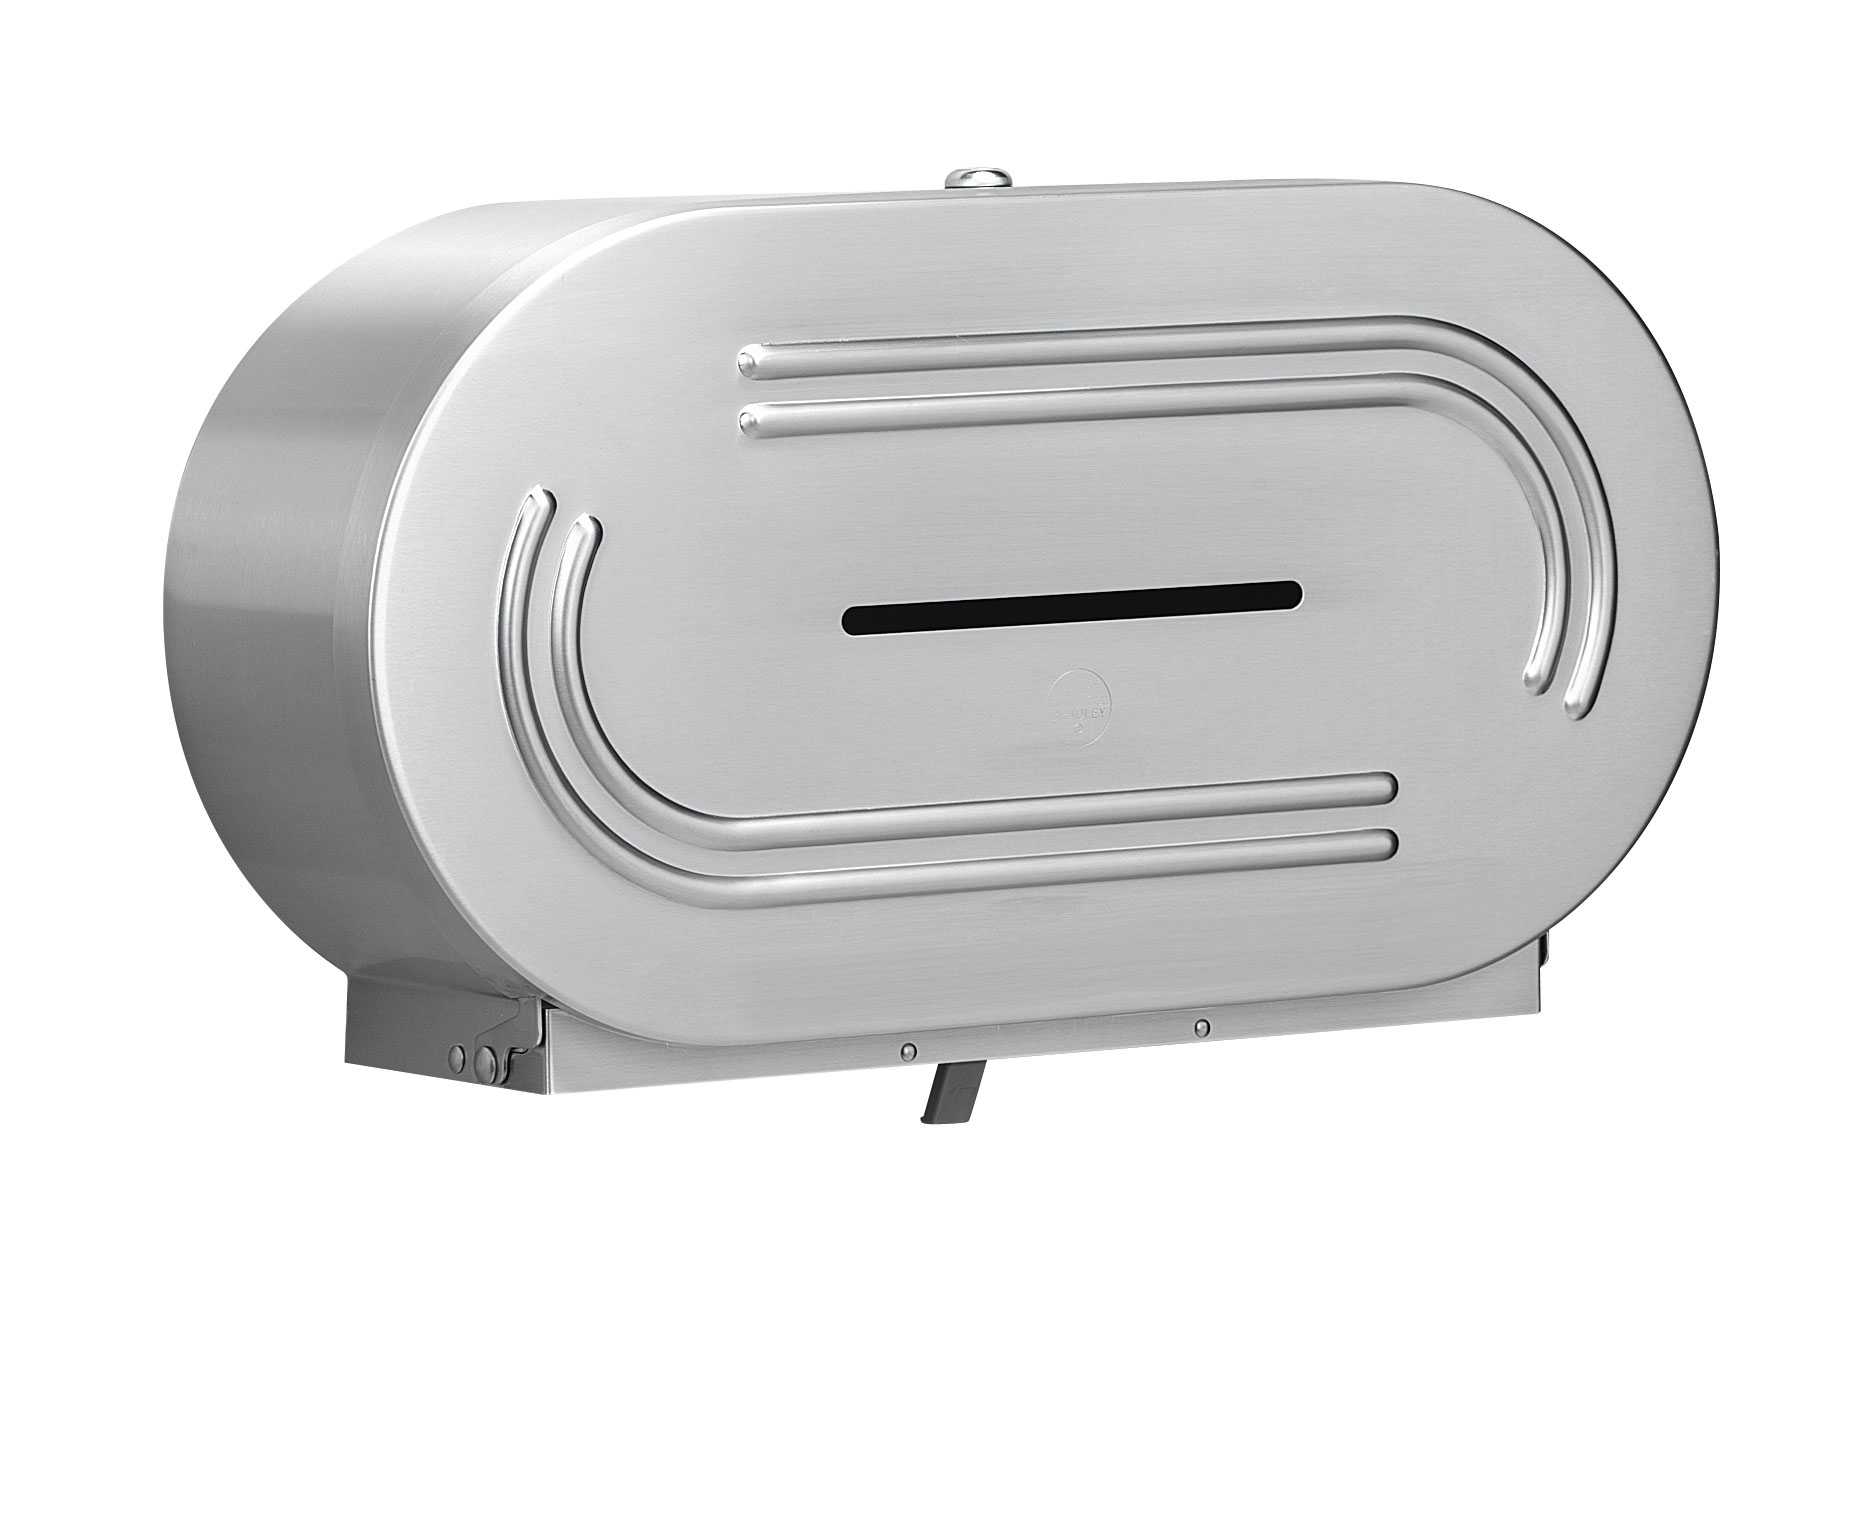 Bradley Bathroom Accessories Jumbo Dual Roll Toilet Tissue Dispenser  Bradley Corporation